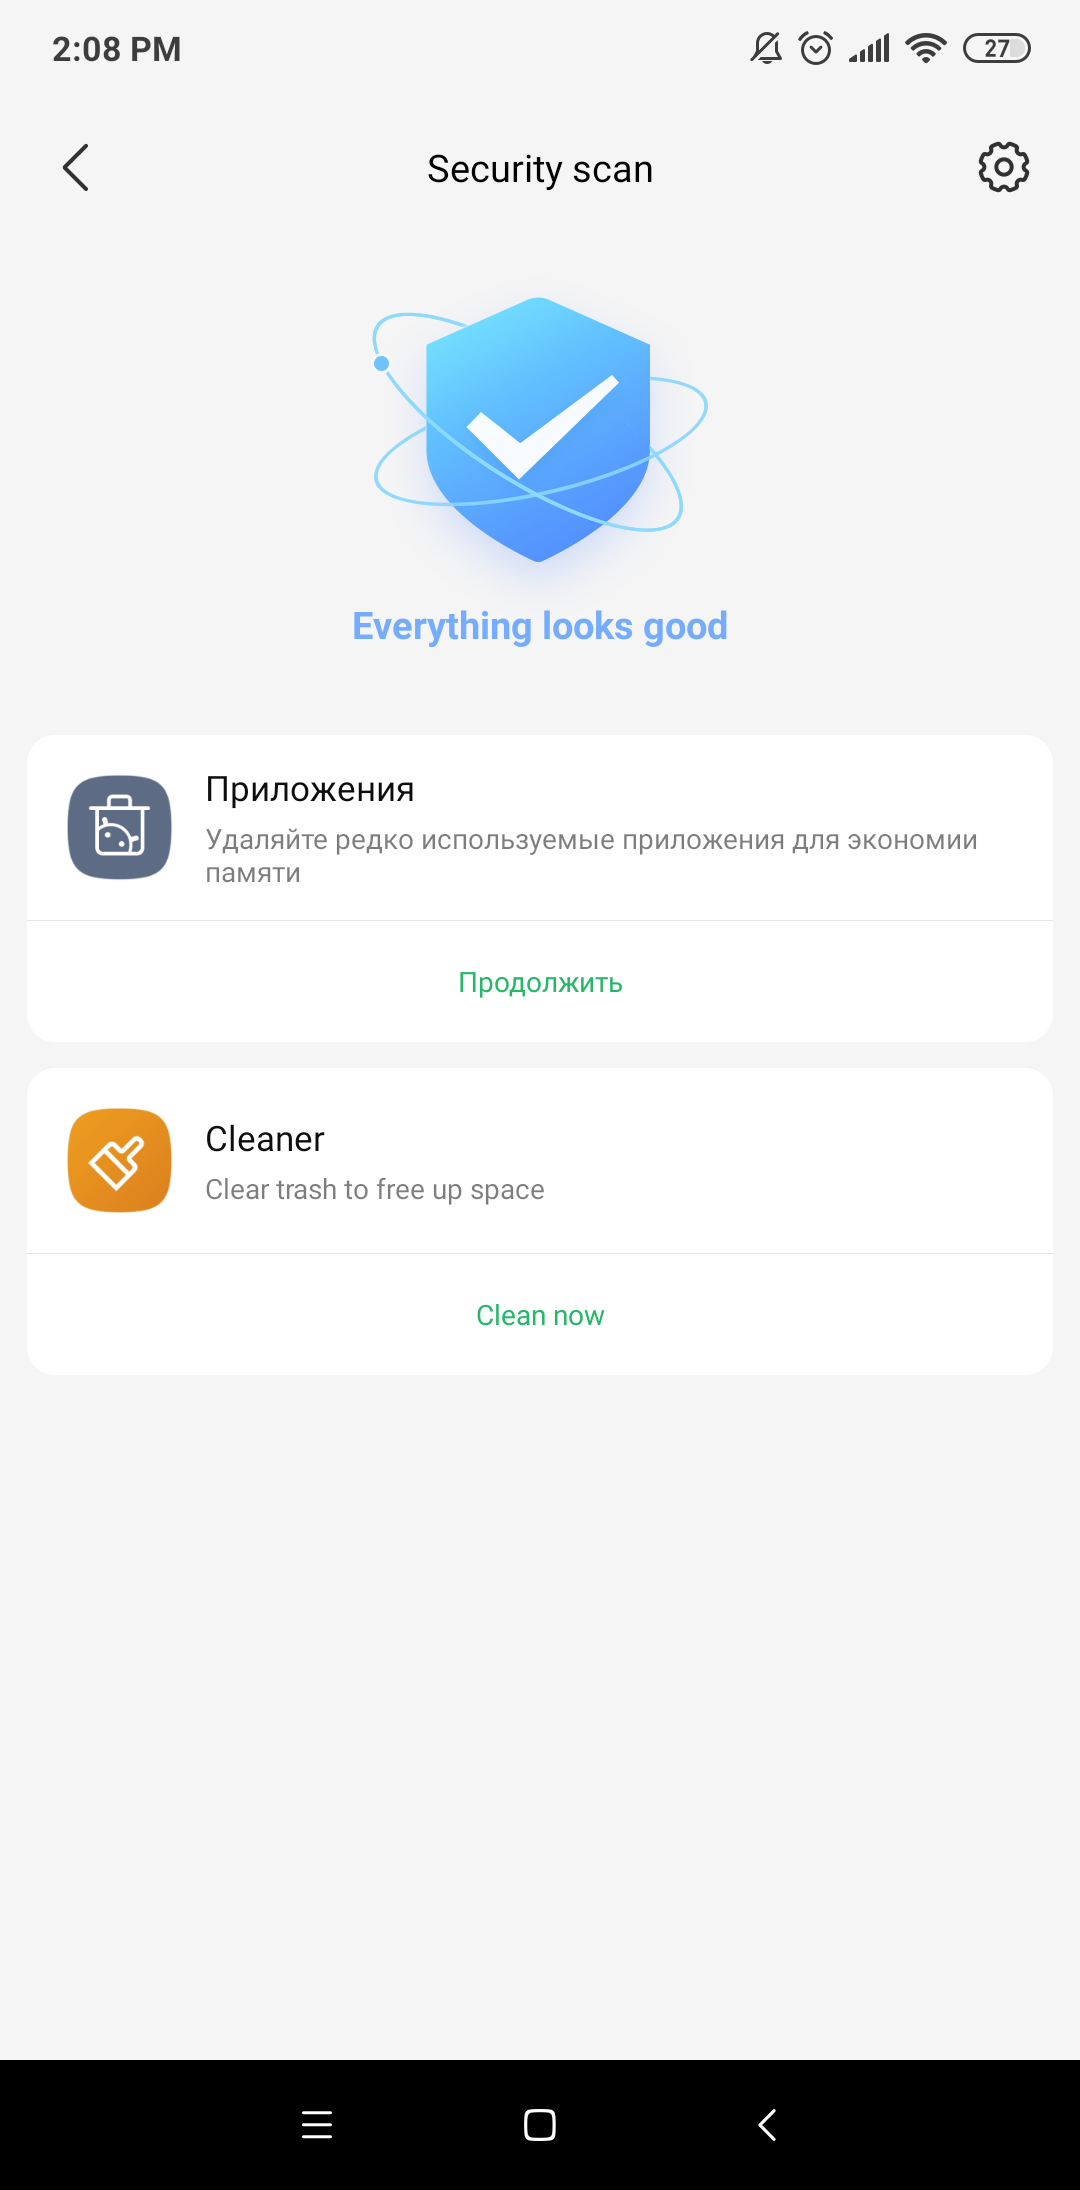 Screenshot_2019-02-24-14-08-00-812_com.miui.securitycenter.png